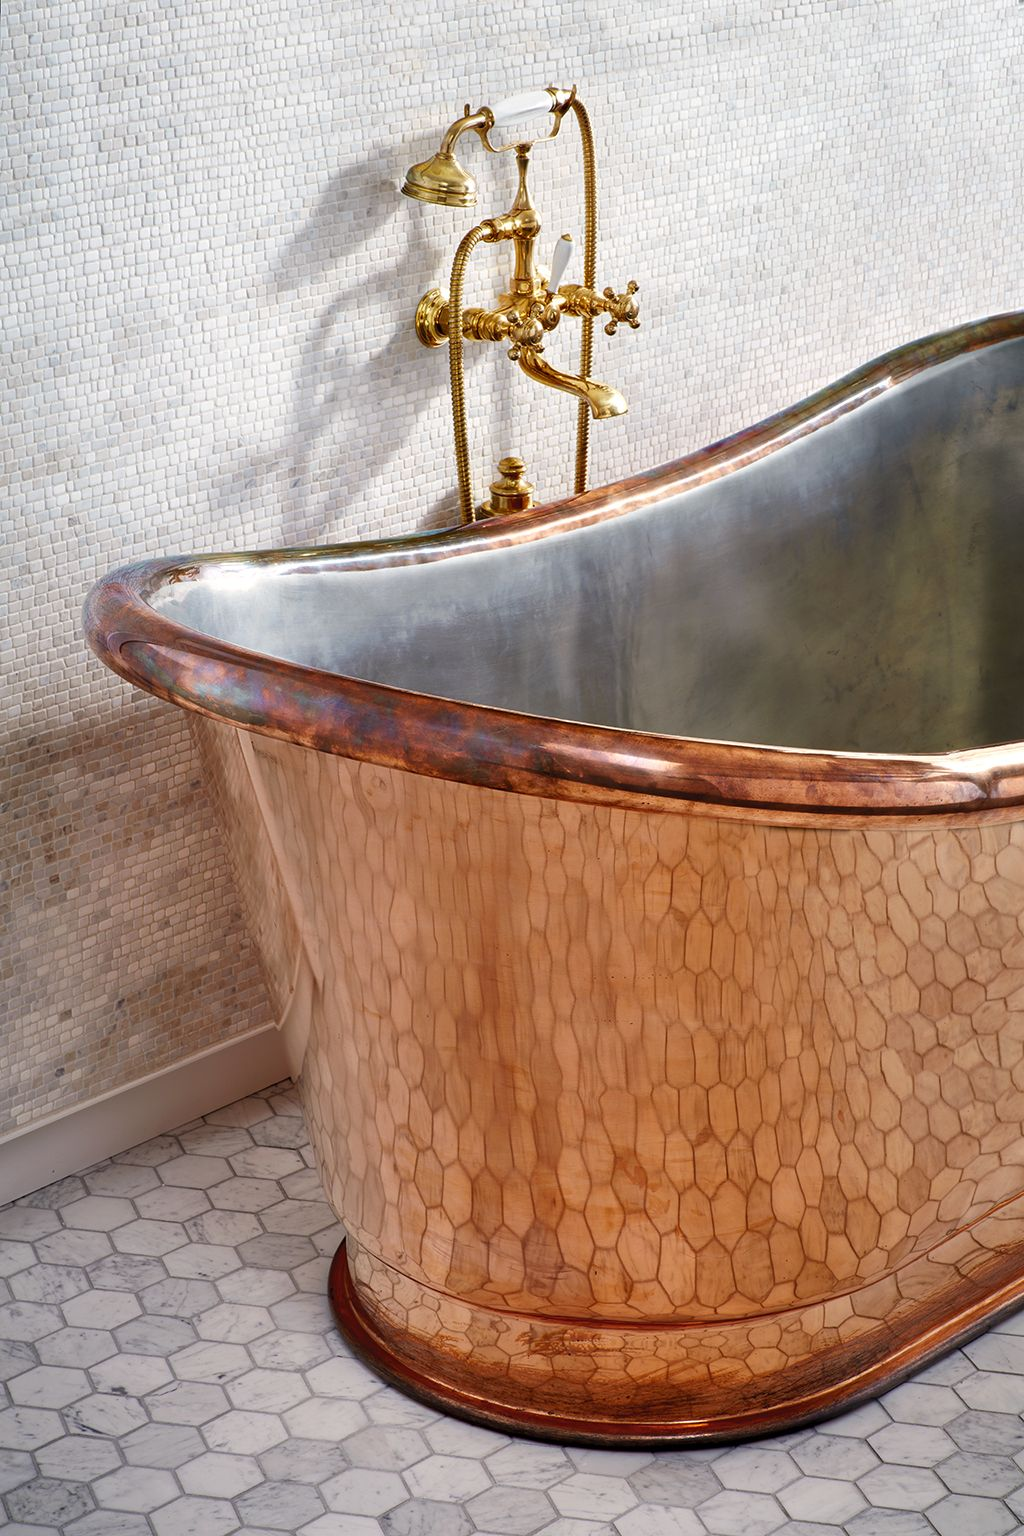 Clothilde 70 X 33 X 29 Freestanding Oval Copper Bathtub Diy Bathroom Remodel Affordable Bathroom Remodel Copper Tub